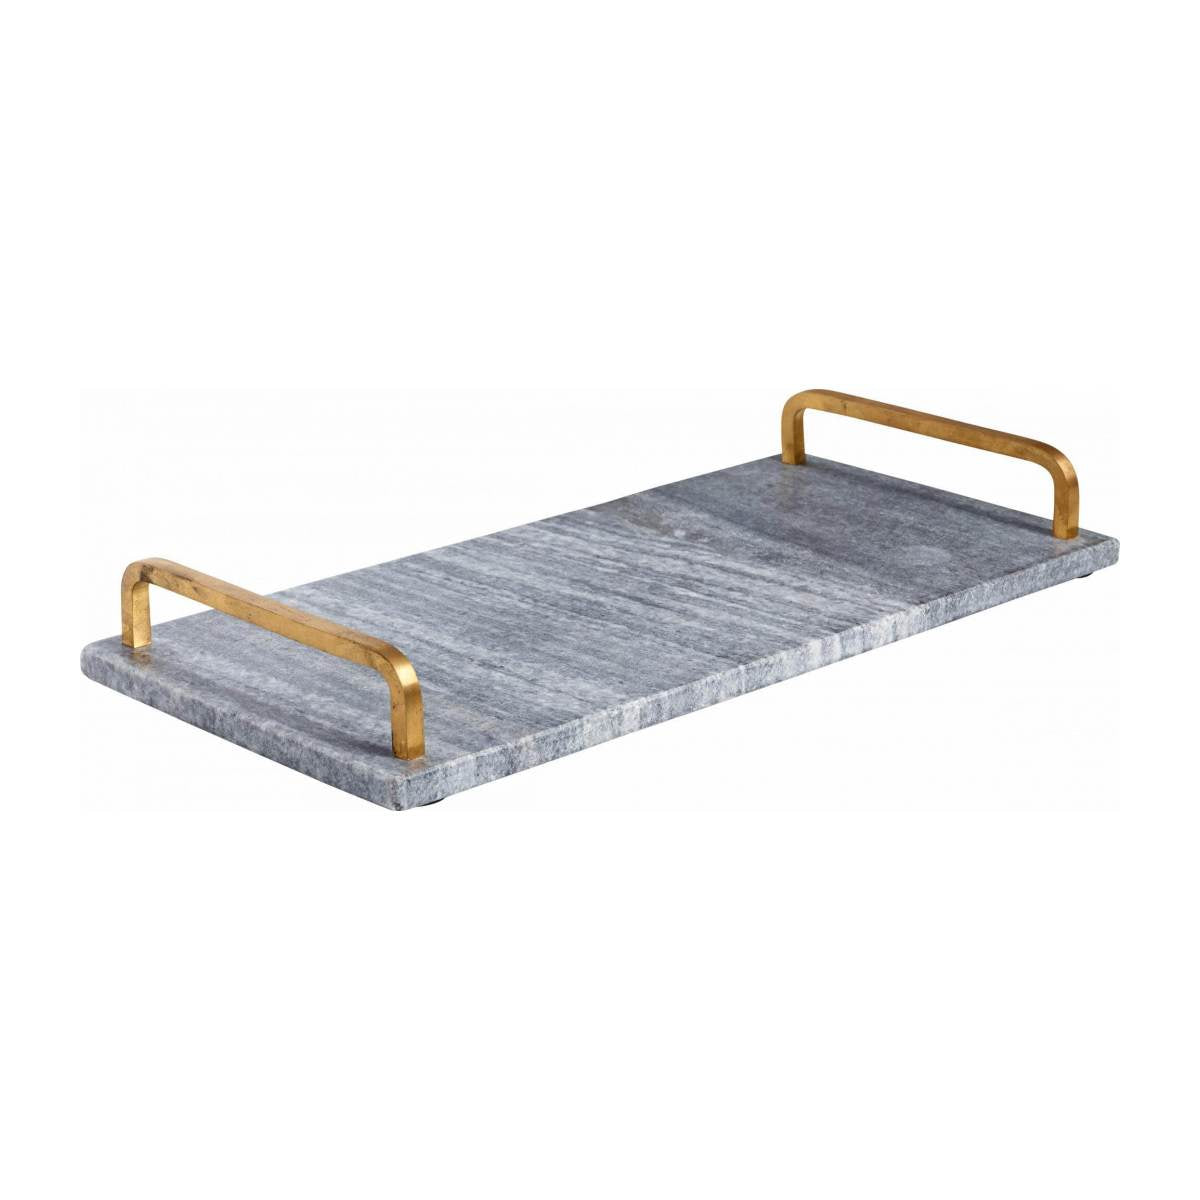 ORUS/MARBLE TRAY RECT. 40X18CM GREY